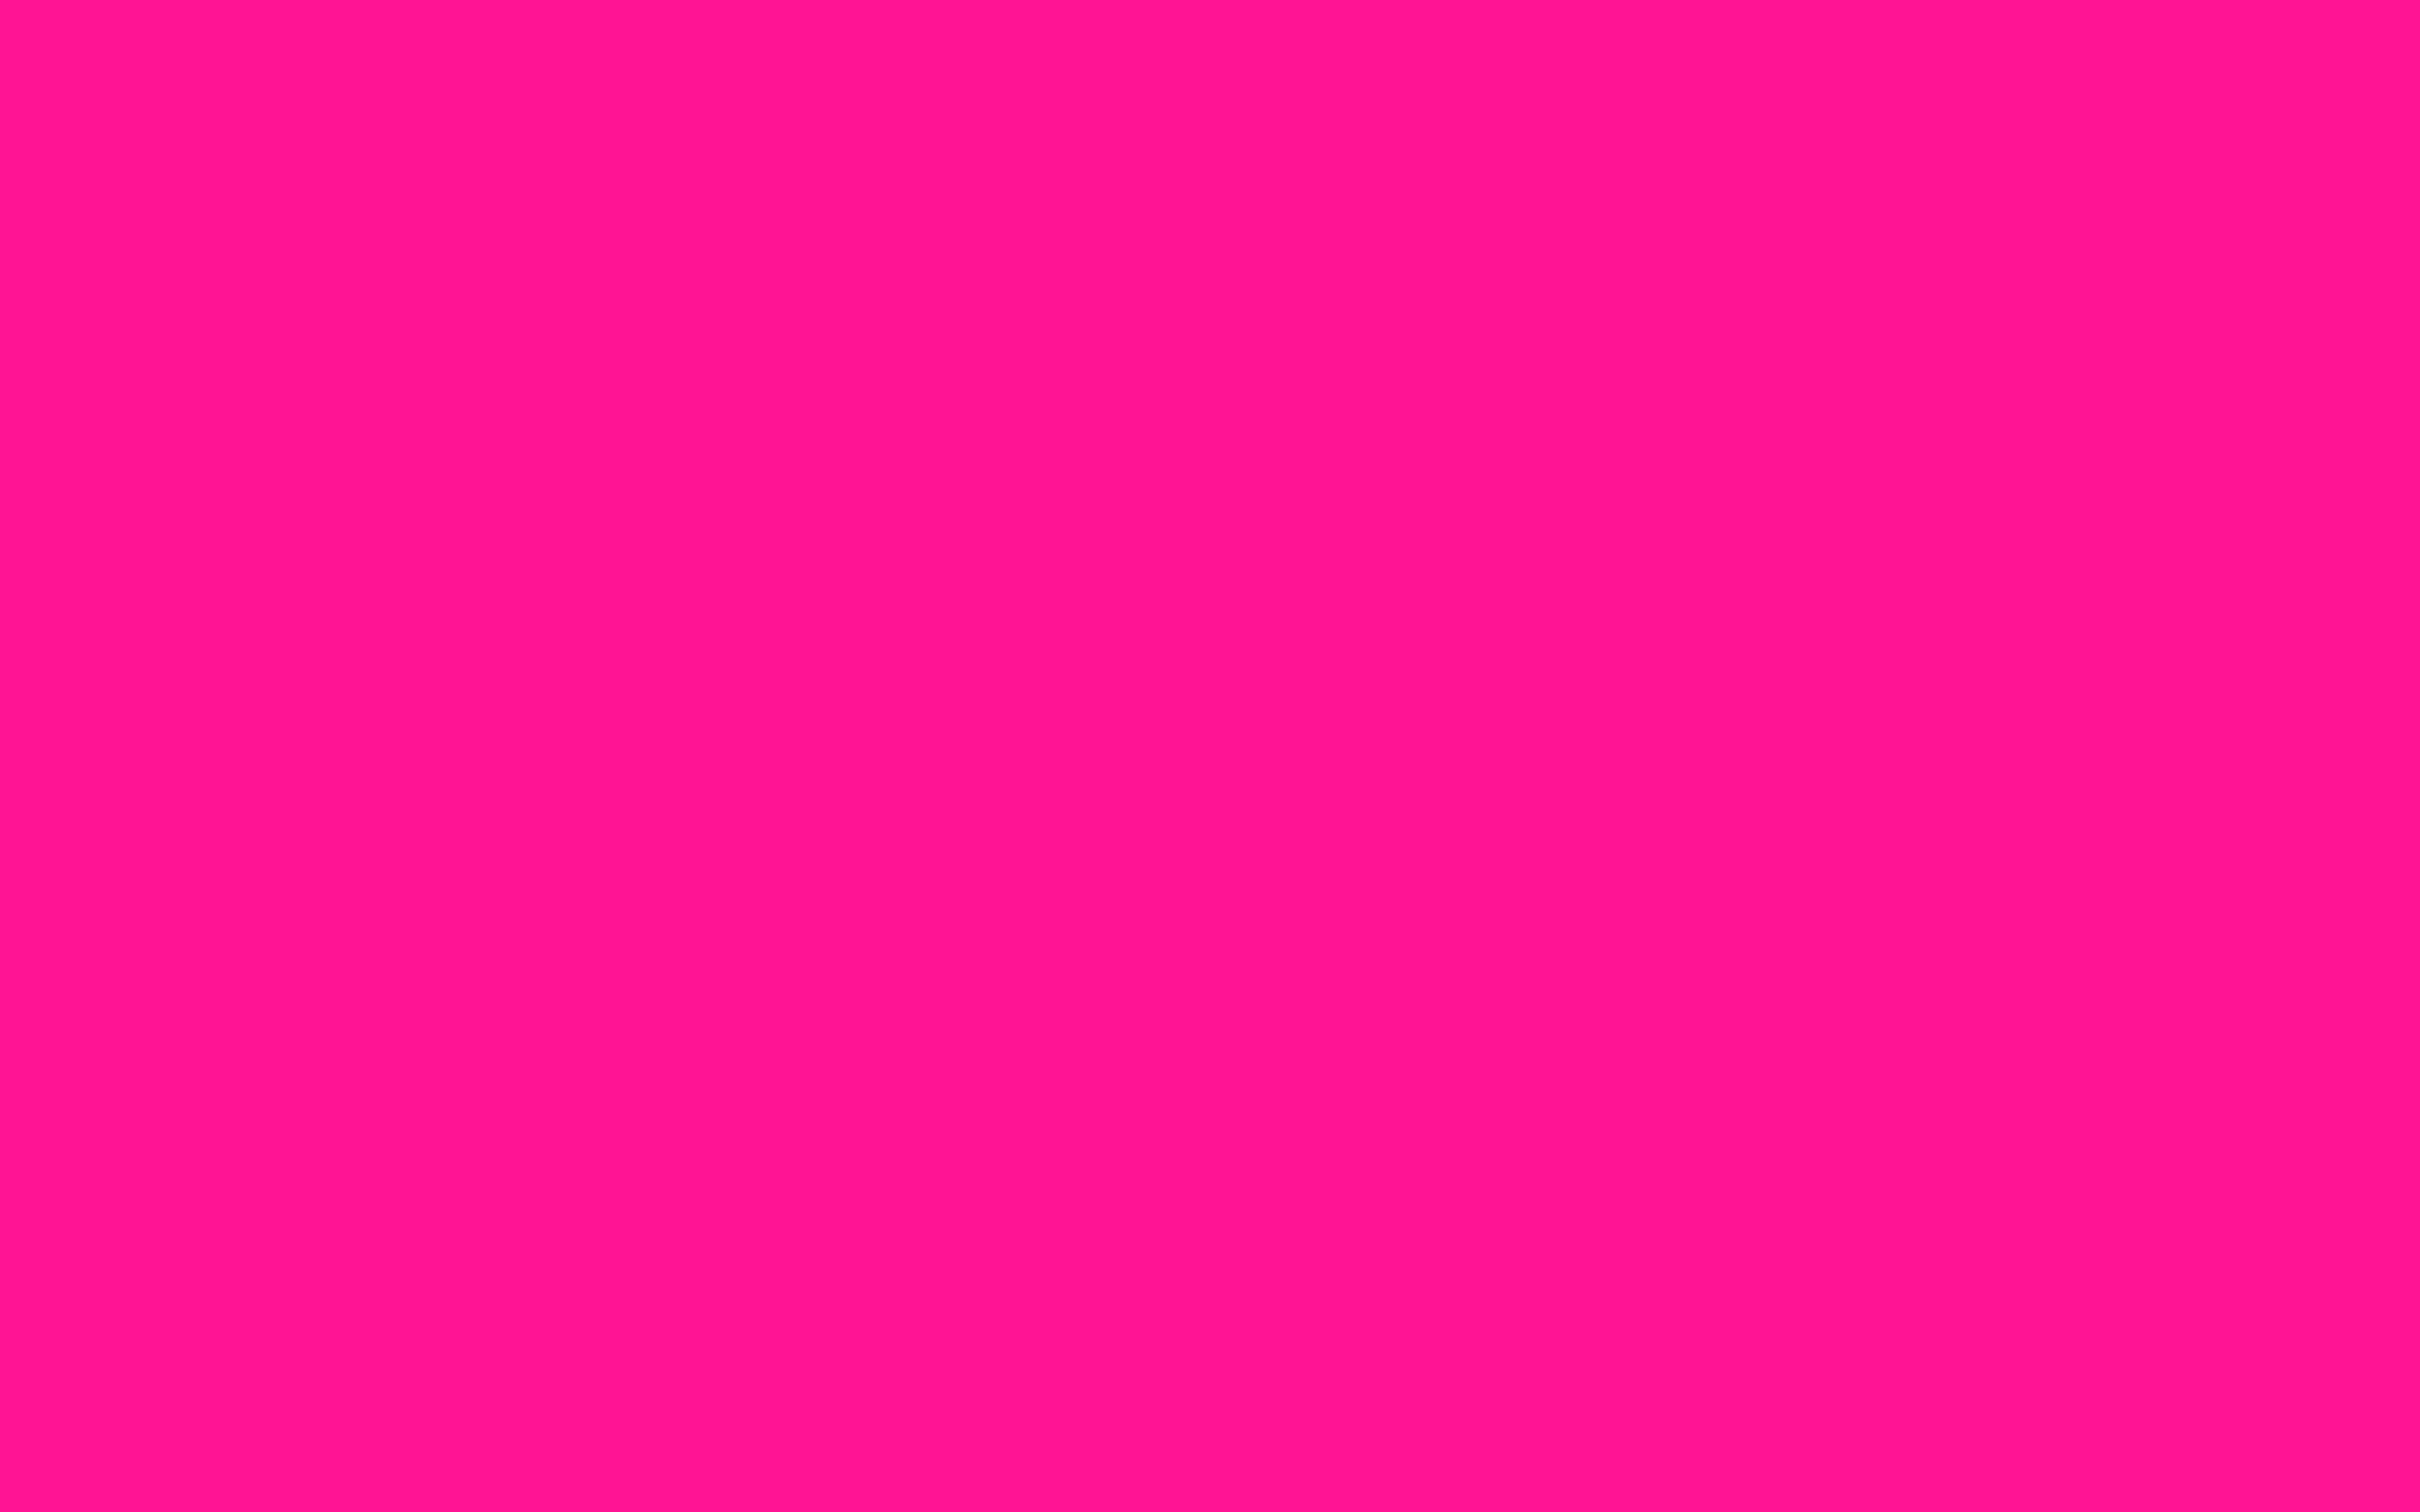 Pink color pink wallpapers wallpaper cave Colors that go good with pink